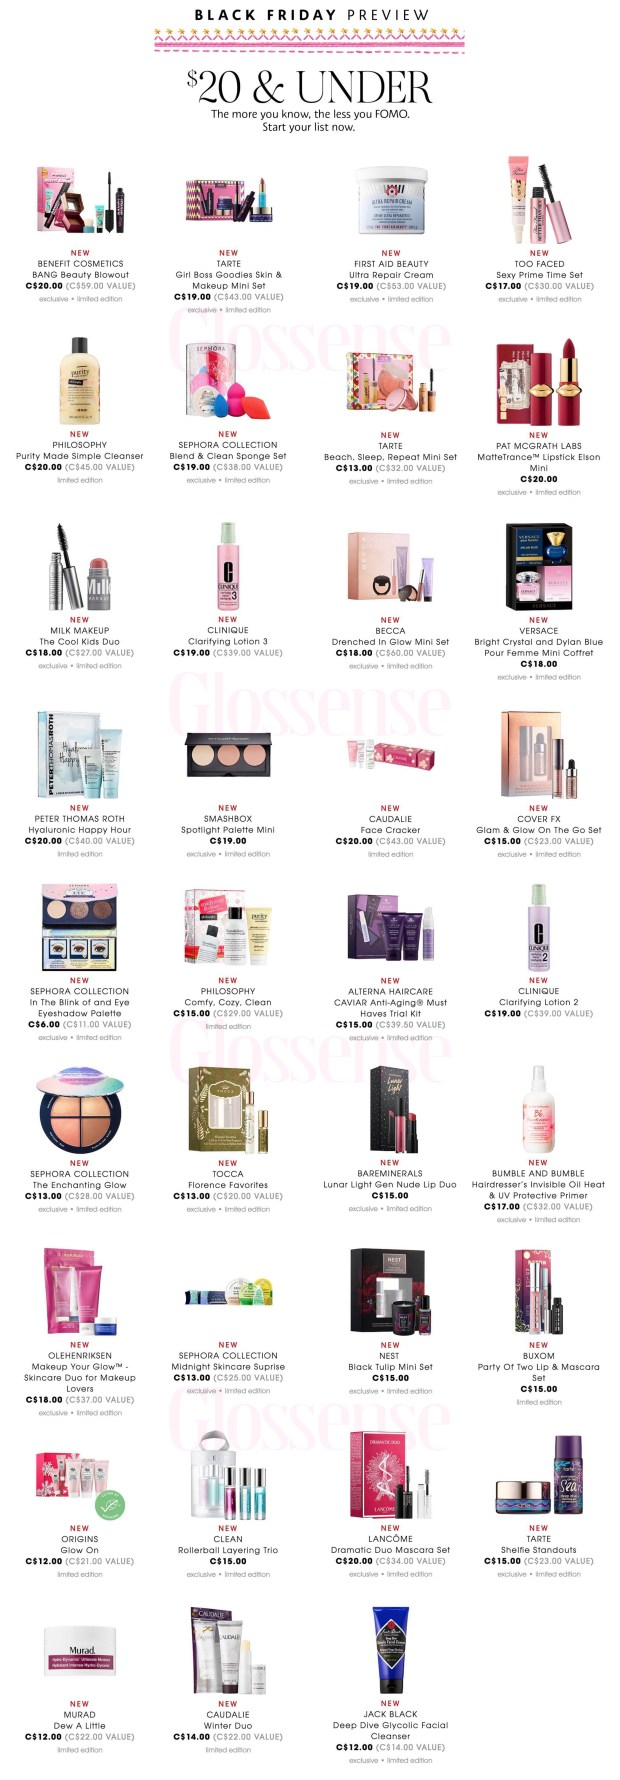 Sephora Canada 2018 Canadian Beauty Deals Black Friday Cyber Monday Full Preview Sneak Peek Sale Sales Offer Offers Promo Promos Skincare Makeup - Glossense